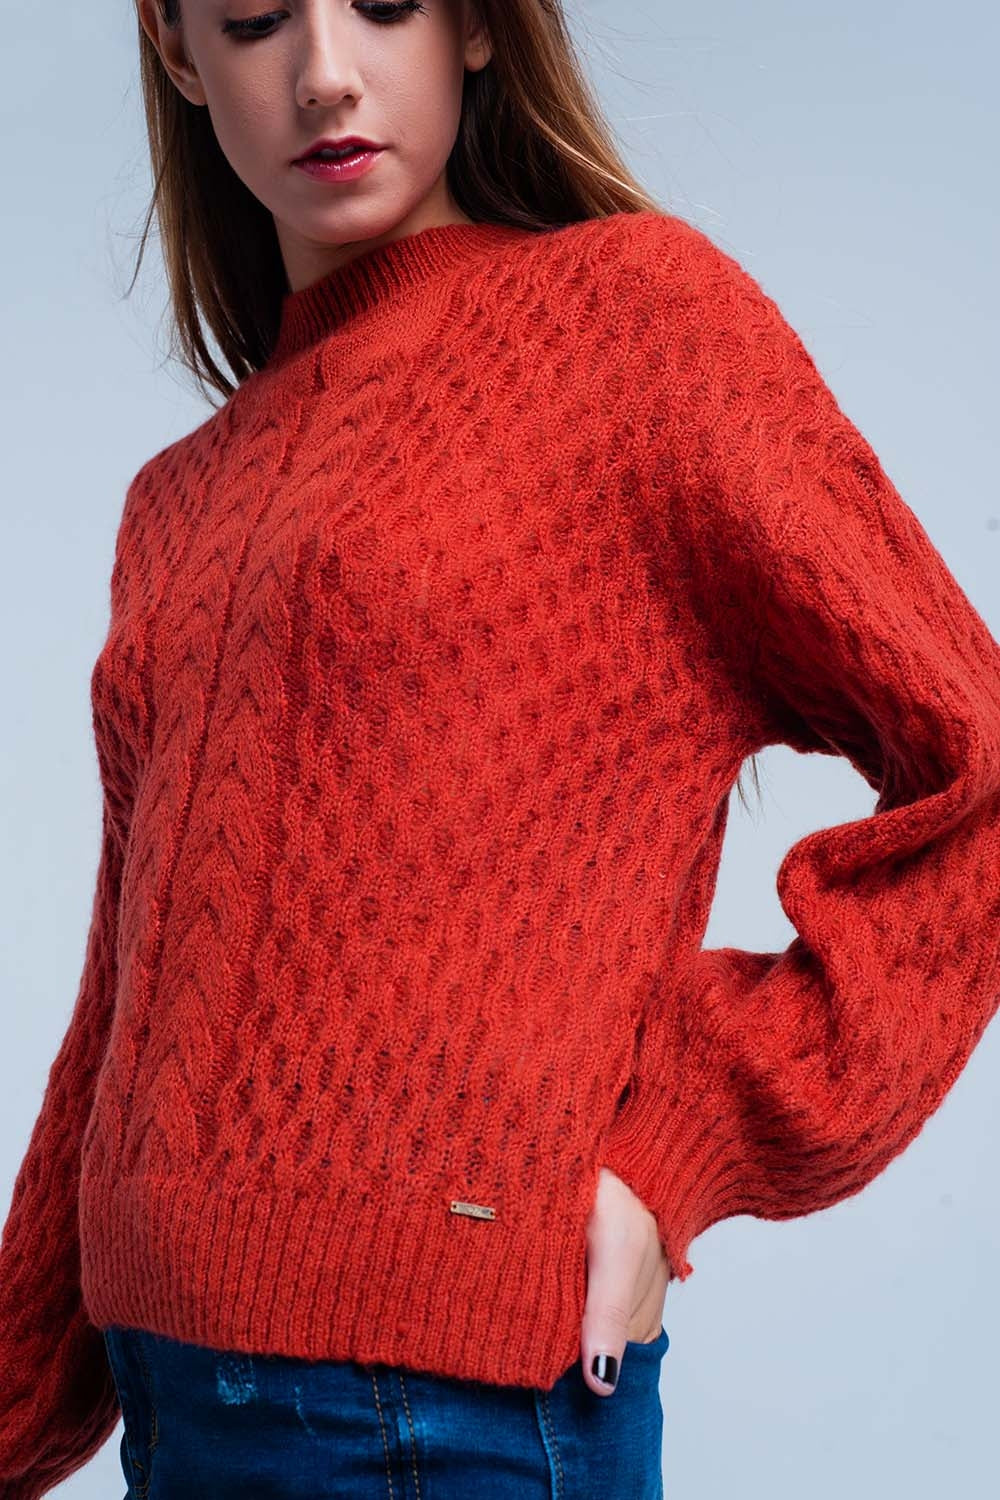 Orange Cable Knitted Sweater With Round Neck